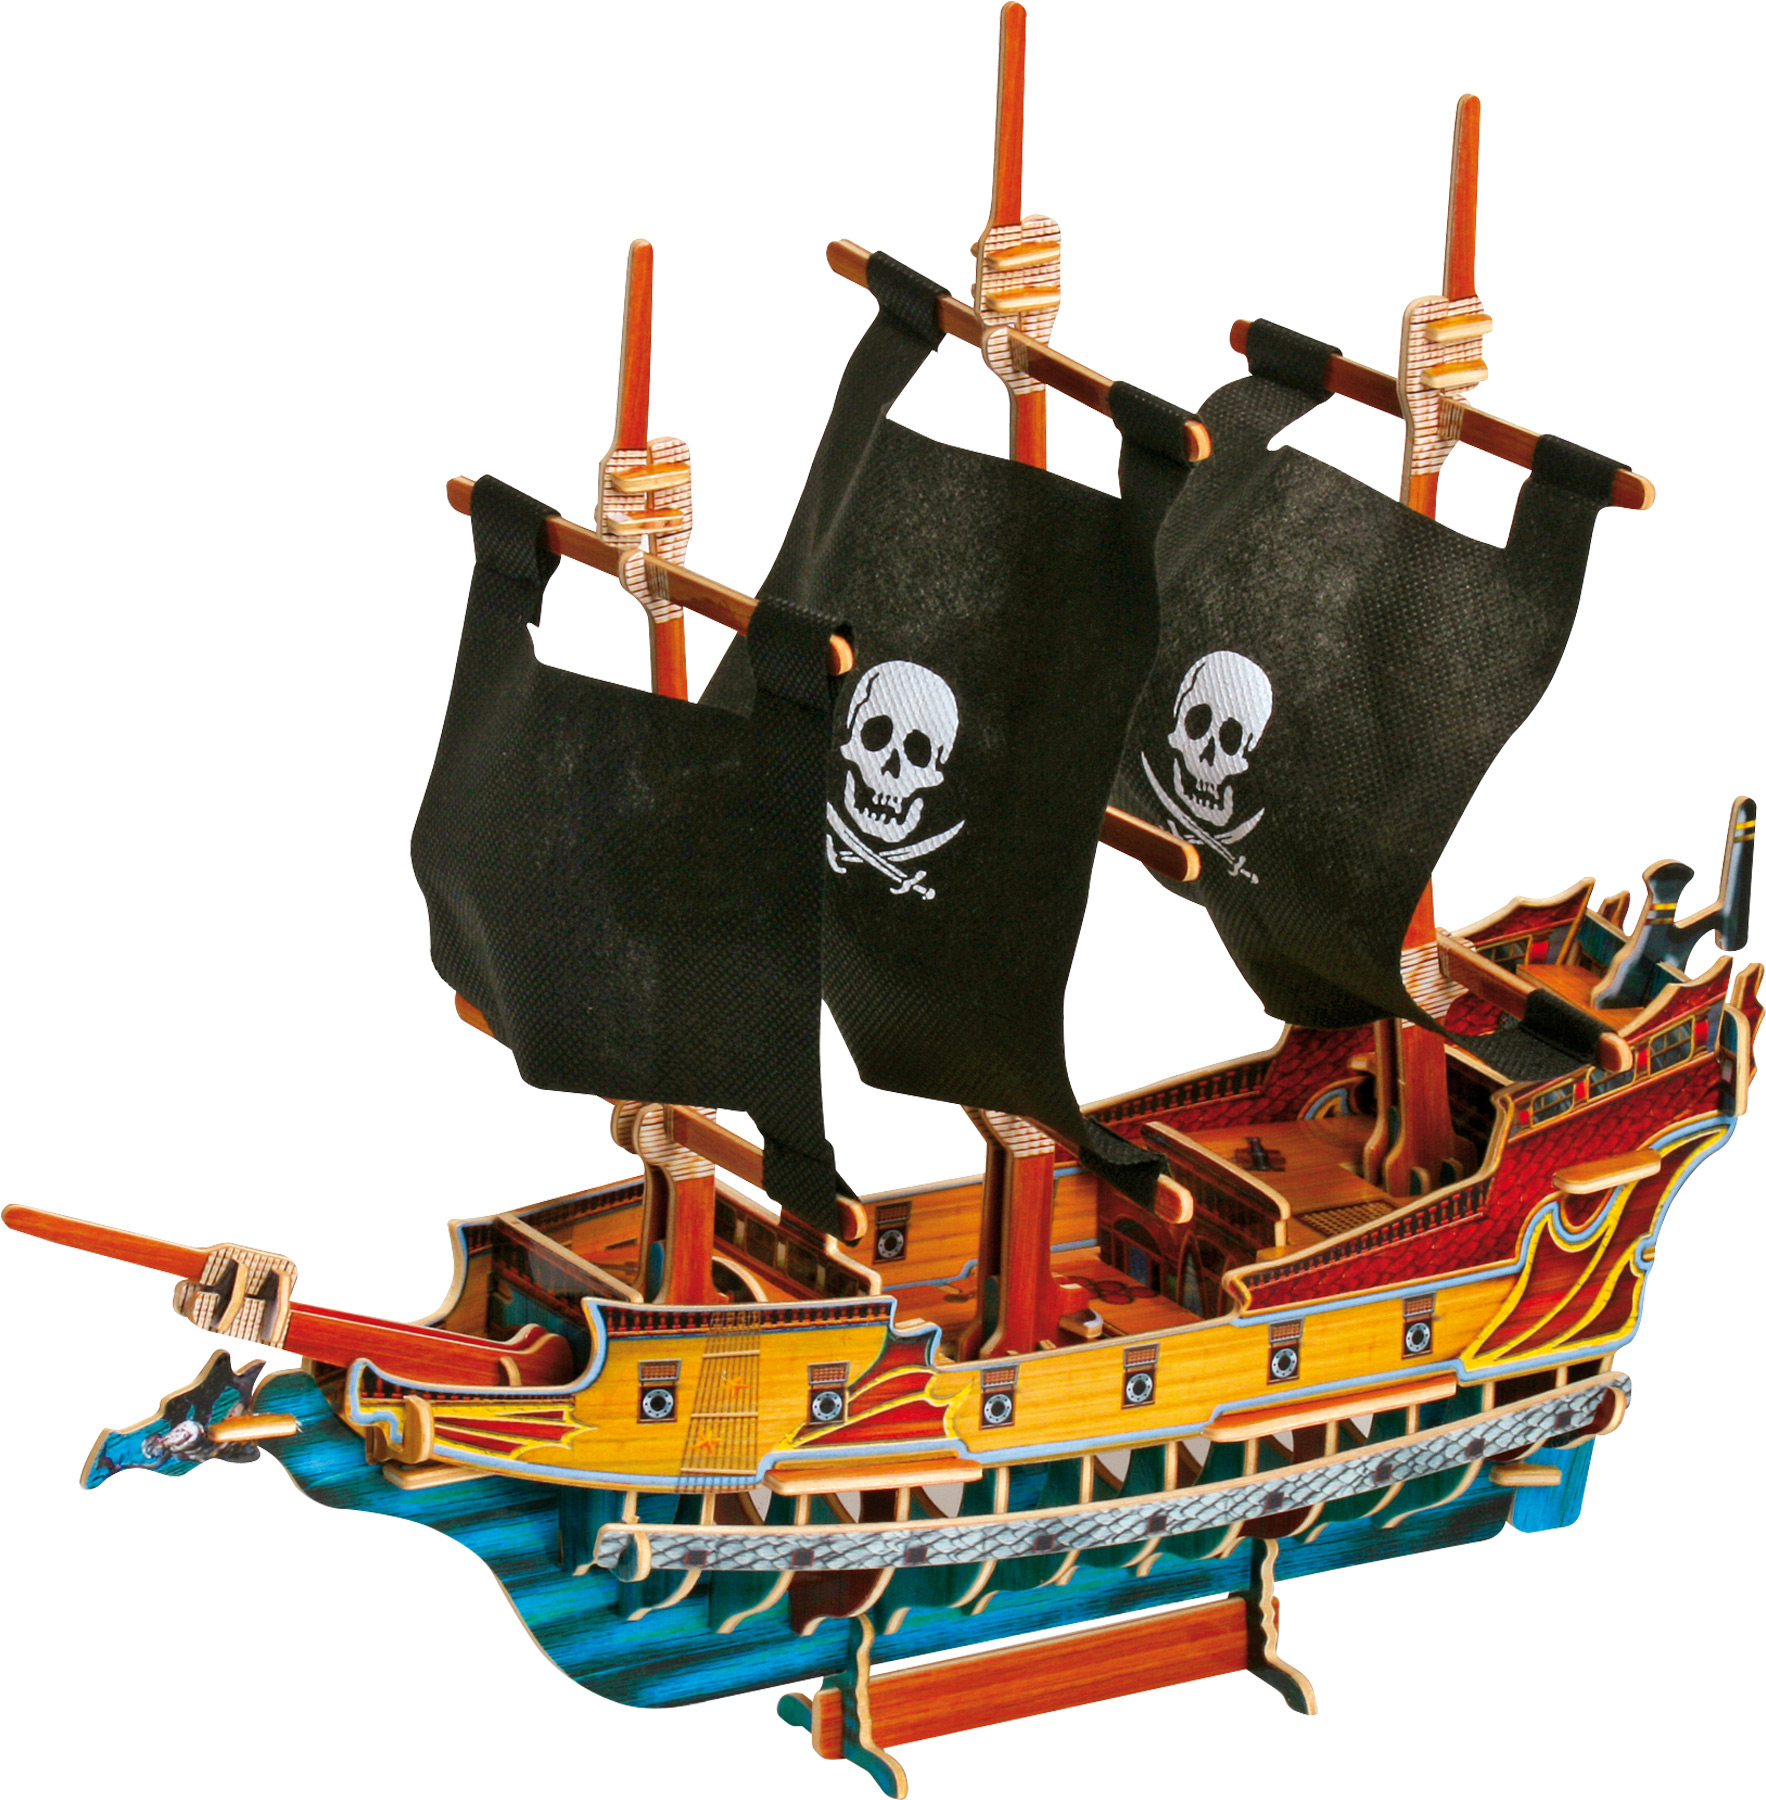 1766x1800 3d Puzzle Pirate Ship